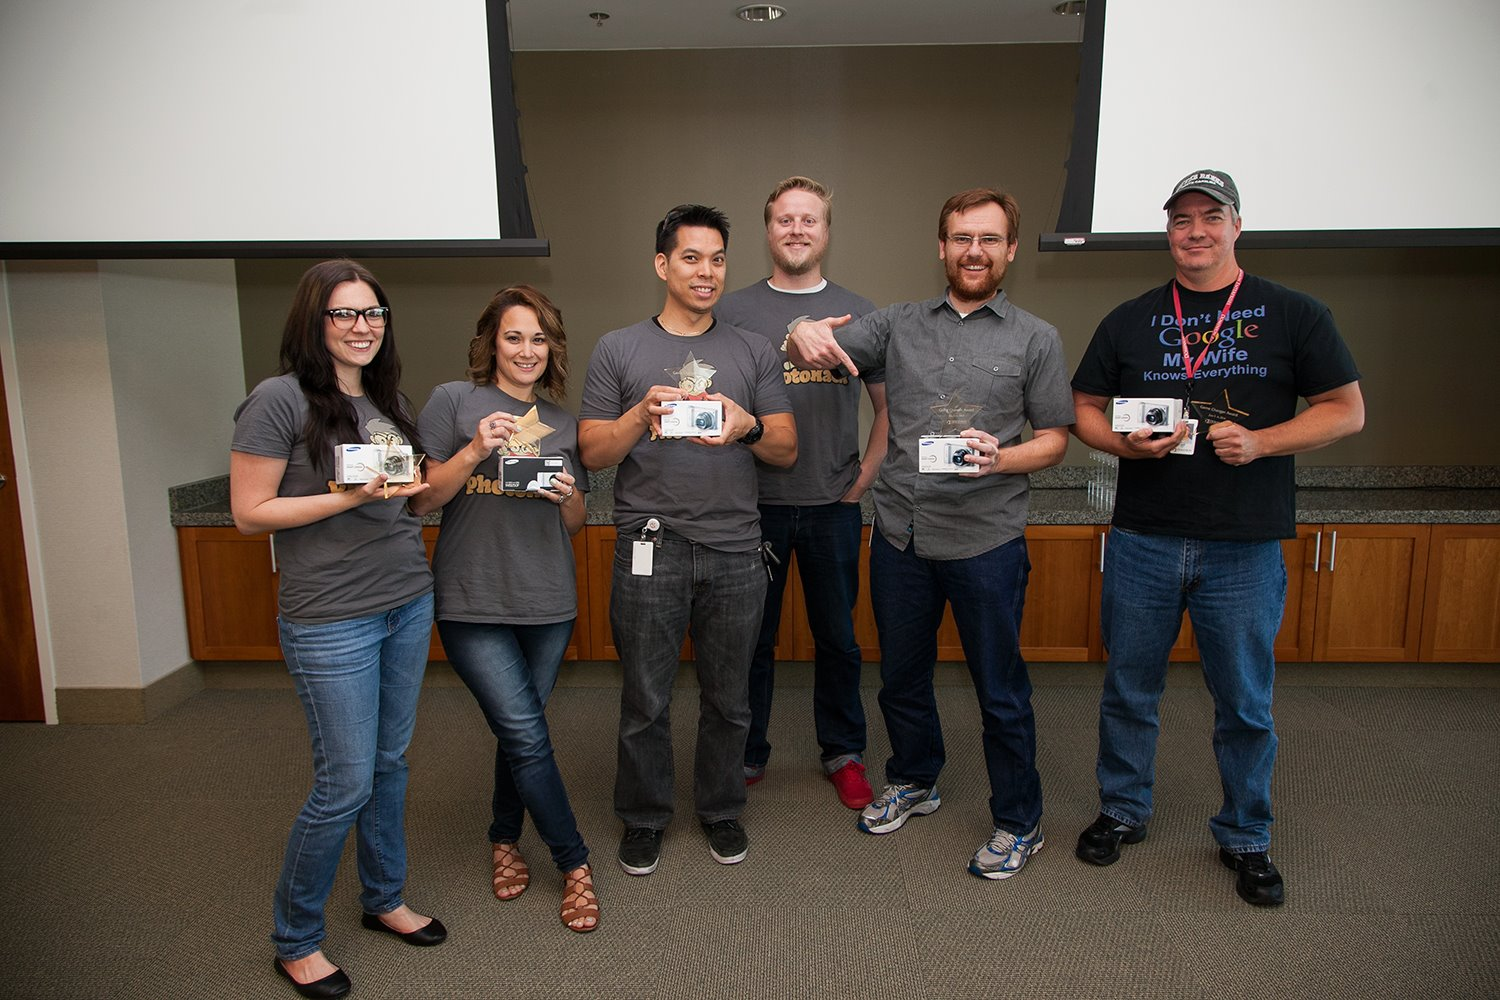 HACKATHON - 2014 - OUR TEAM WON A